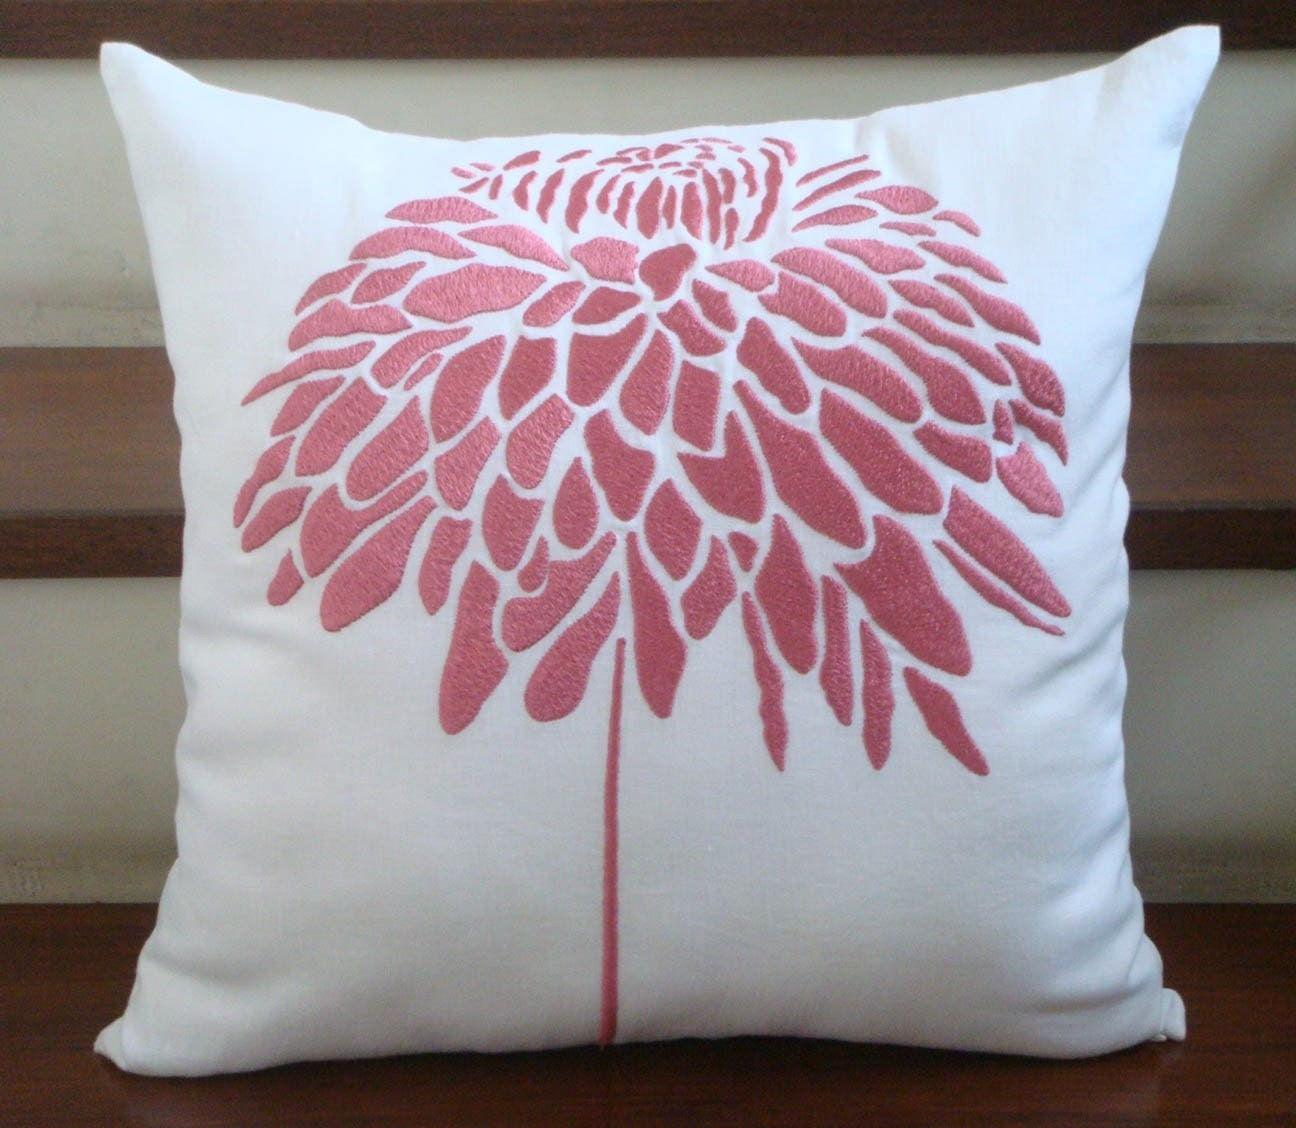 Peony  FLower Embroidery Pillow Cover in Coral Pink - White  fabric